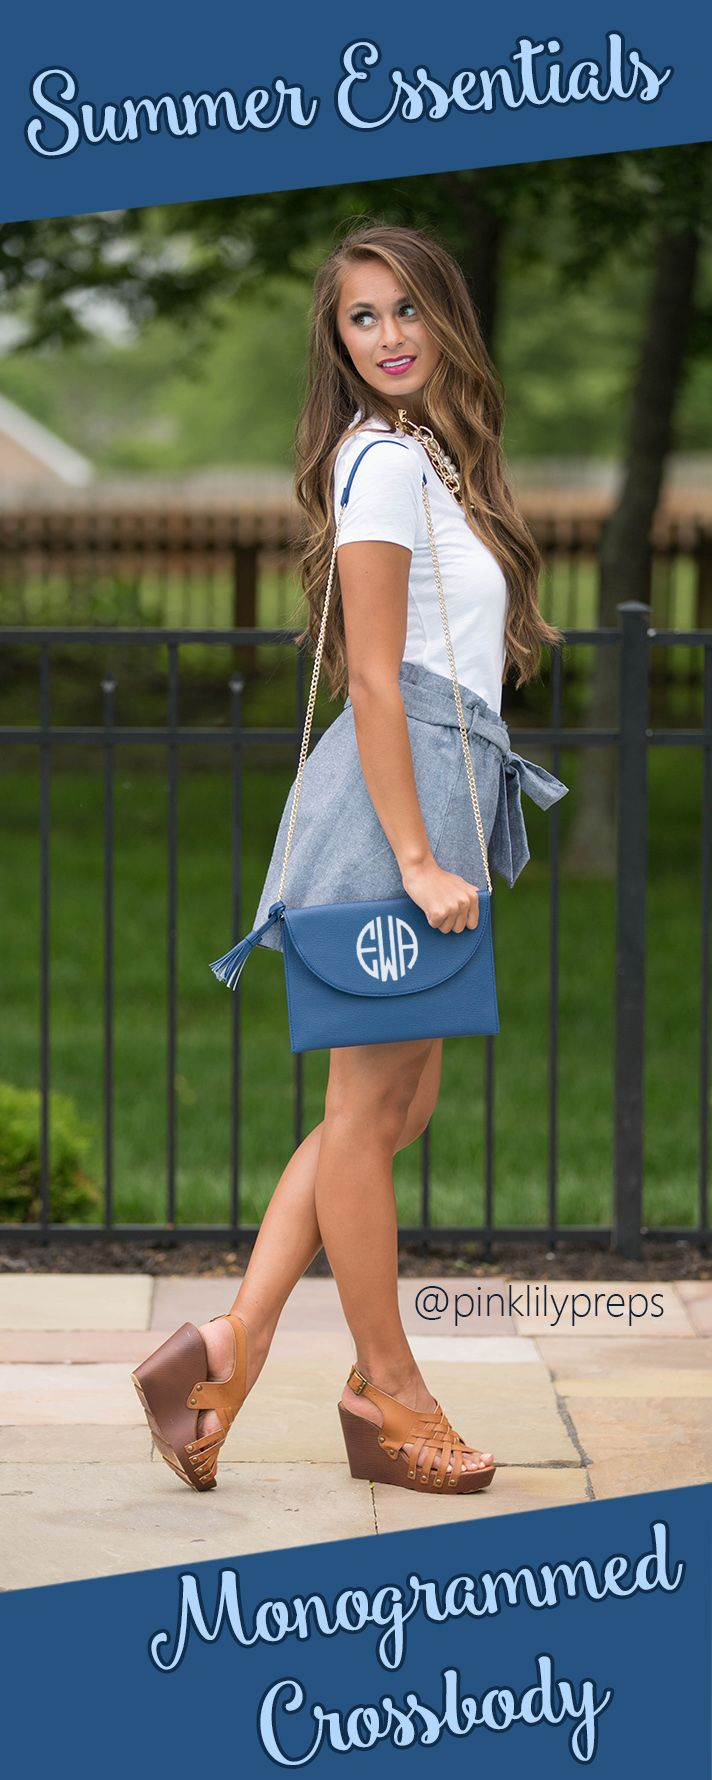 This versatile monogrammed purse can be used as a crossbody or clutch. It's the perfect summer accessory! Take your style to a whole new level this summer!